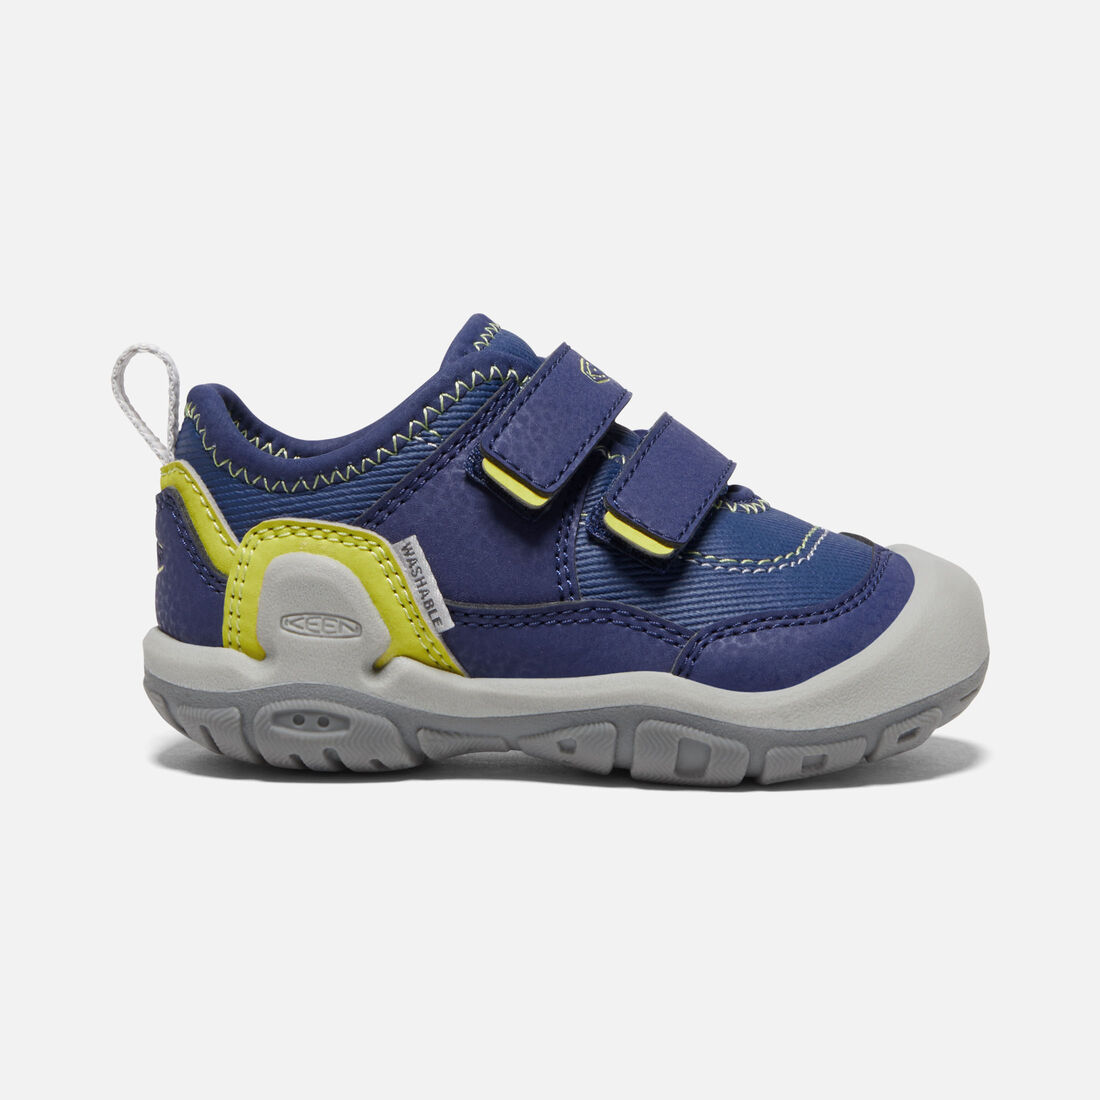 Toddlers' Knotch Hollow Double Strap Sneaker in Blue Depths/Evening Primrose - large view.